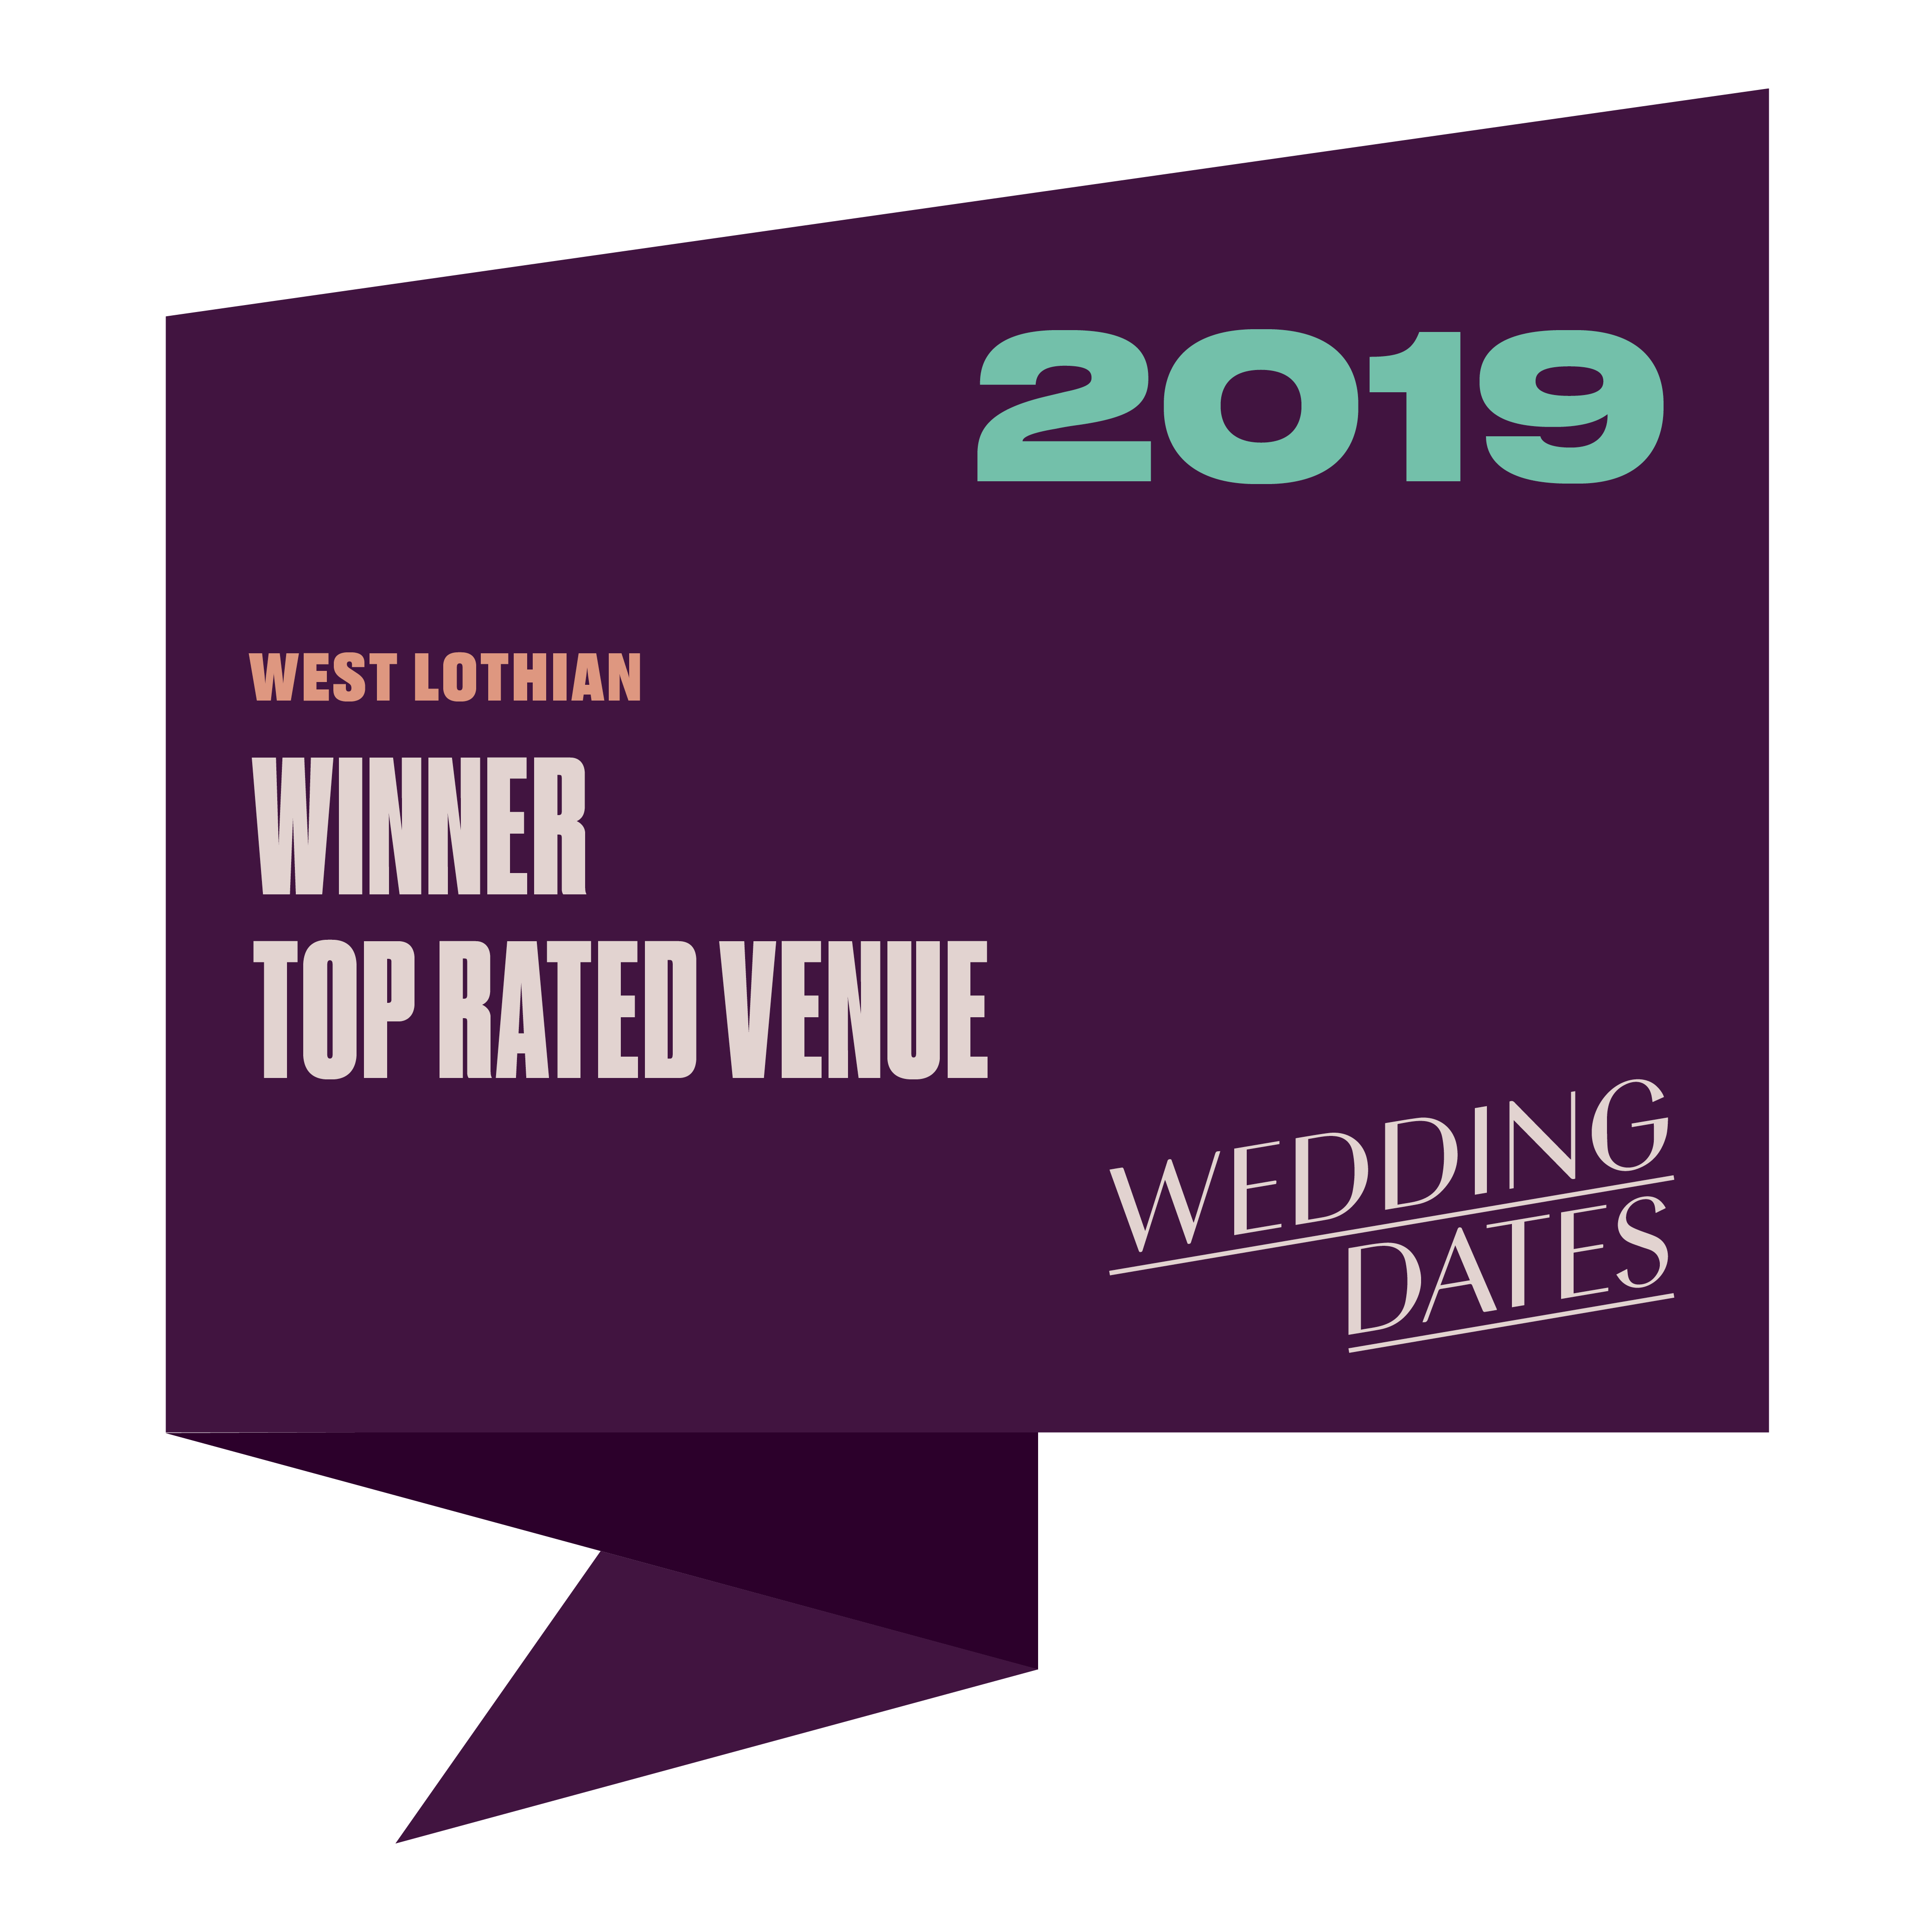 Top Rated Wedding Venues in West Lothian 2019